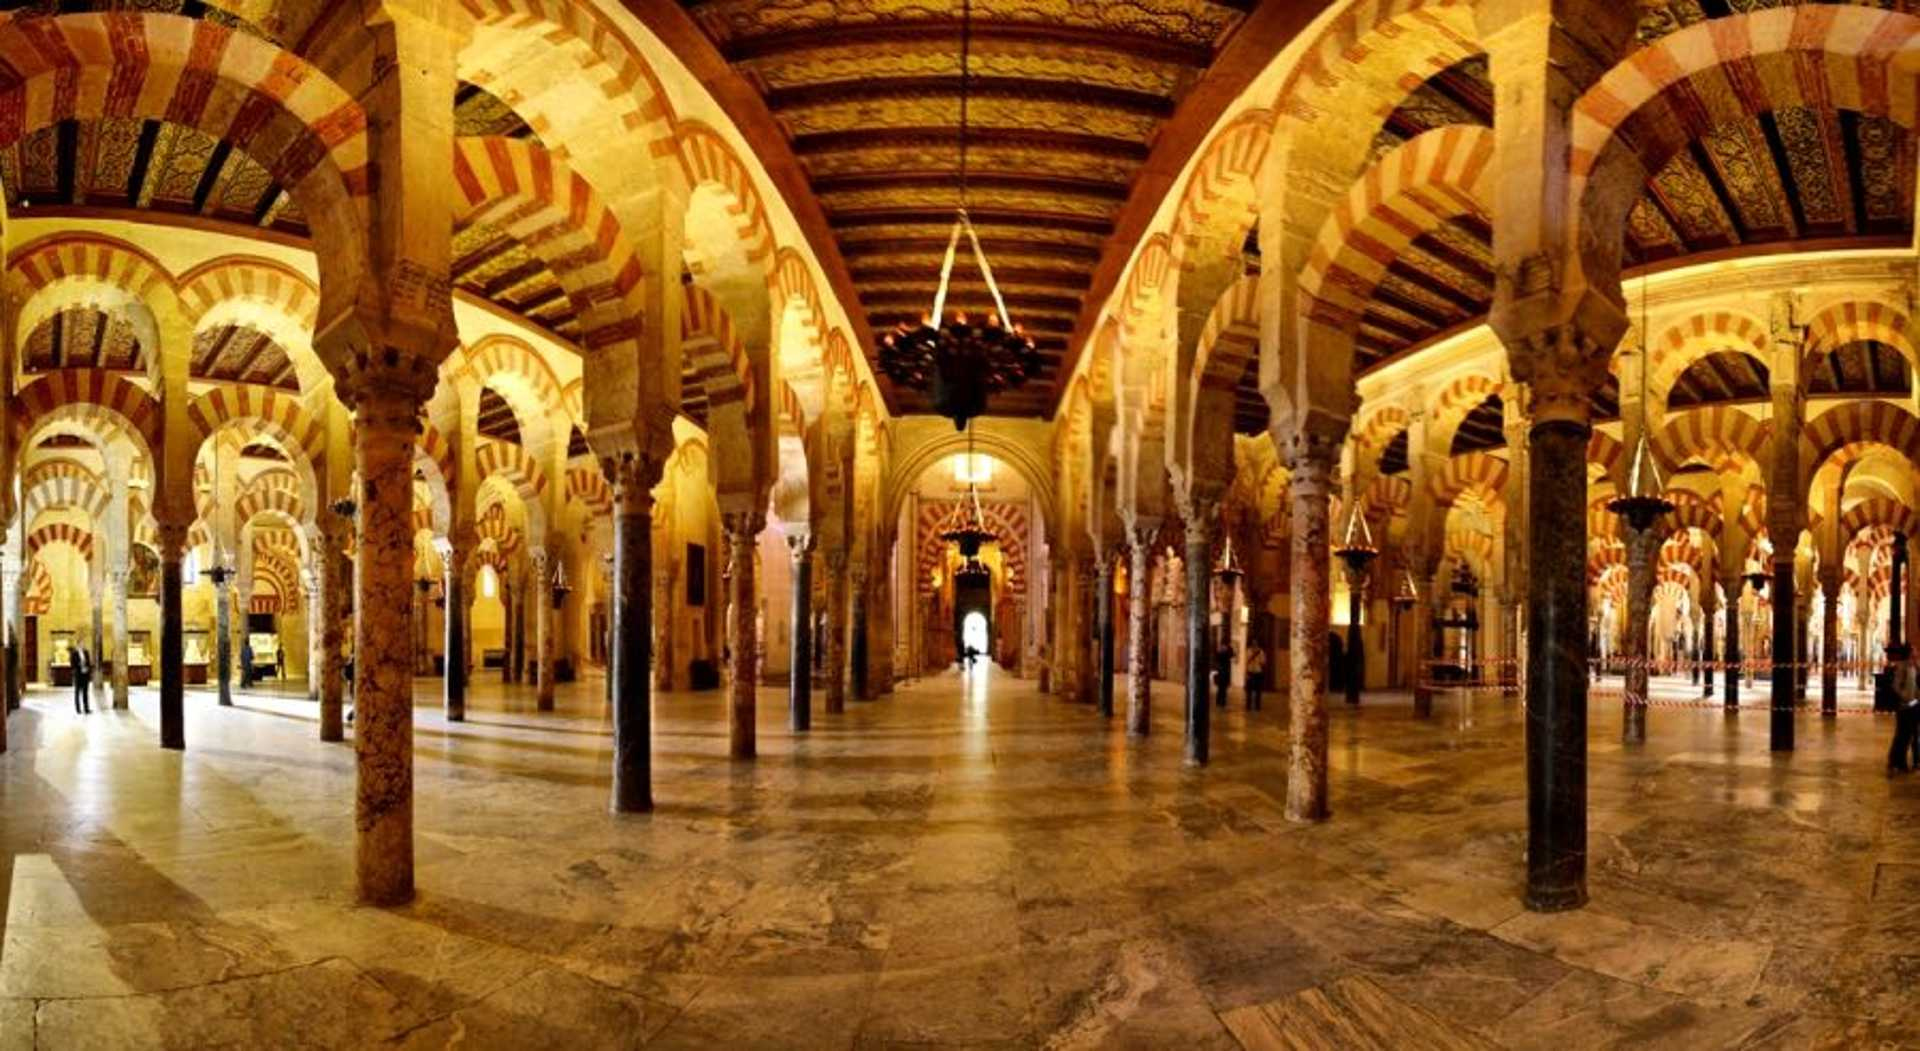 Marvel at the architecture of Spain's Great Mosque of Cordoba